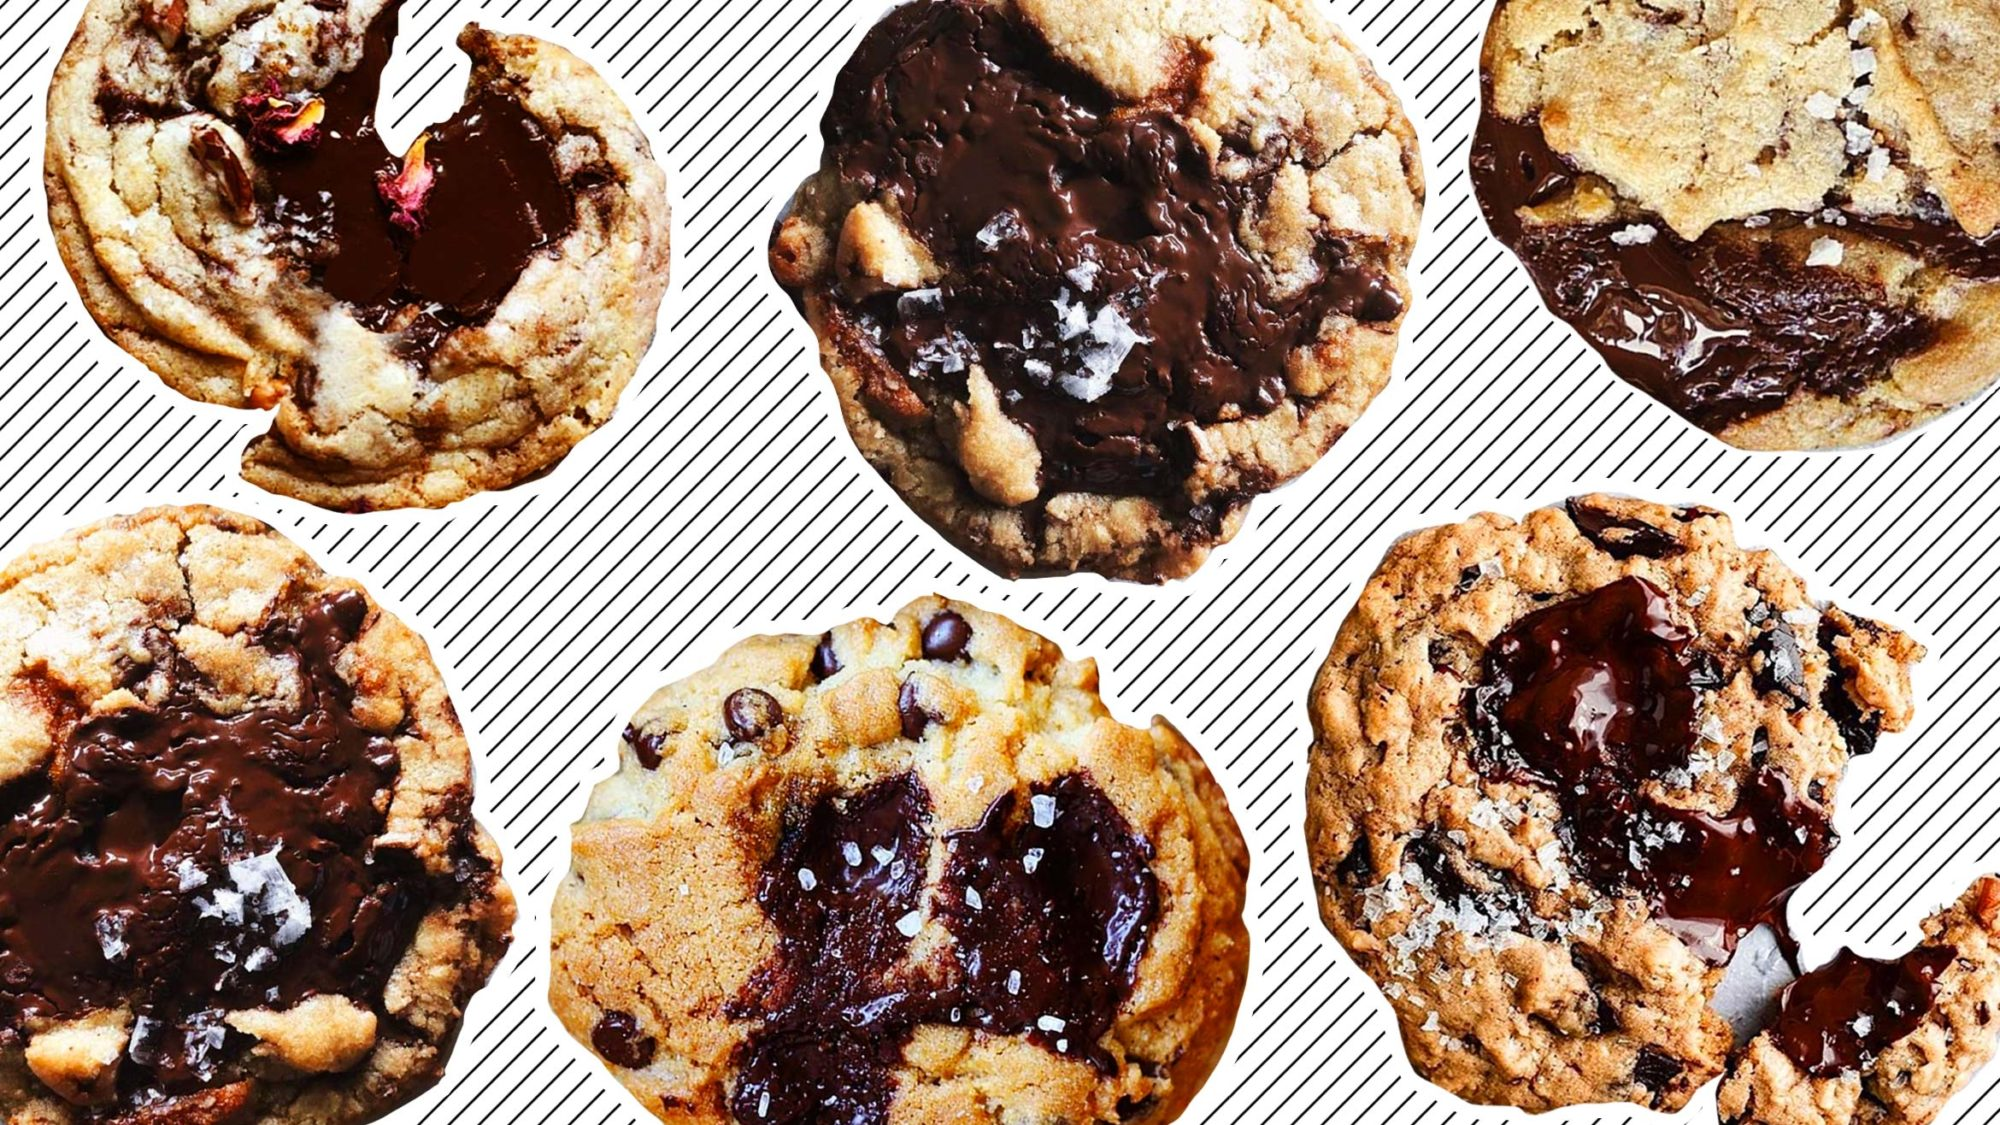 Article-Instagram-Ruined-the-Chocolate-Chip-Cookie